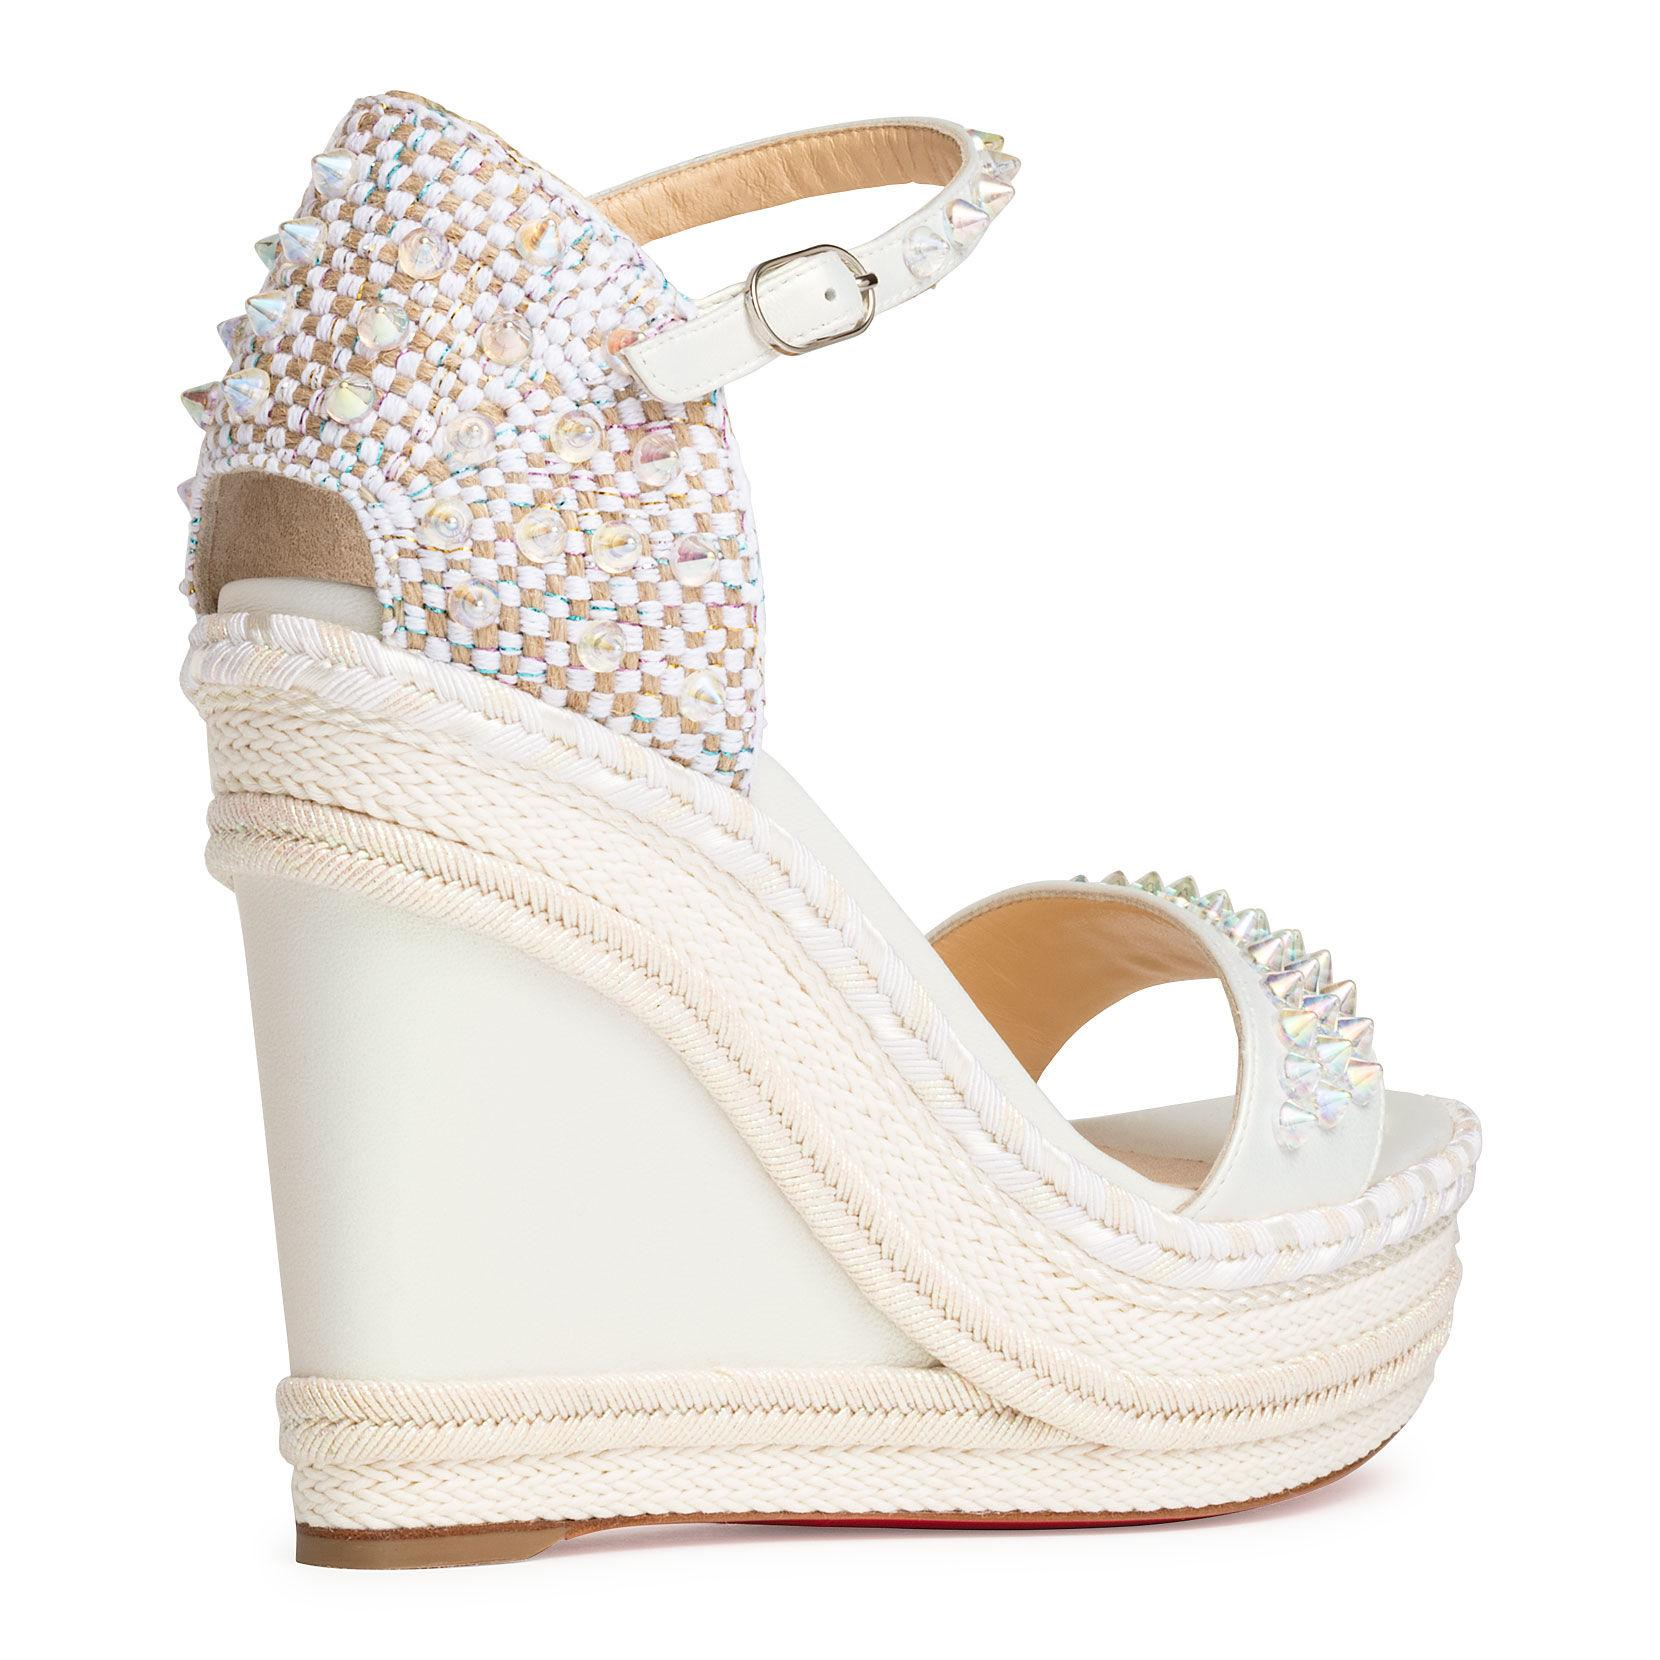 new styles feee2 bd21d Christian Louboutin Madmonica 120 White Leather Wedges - Lyst